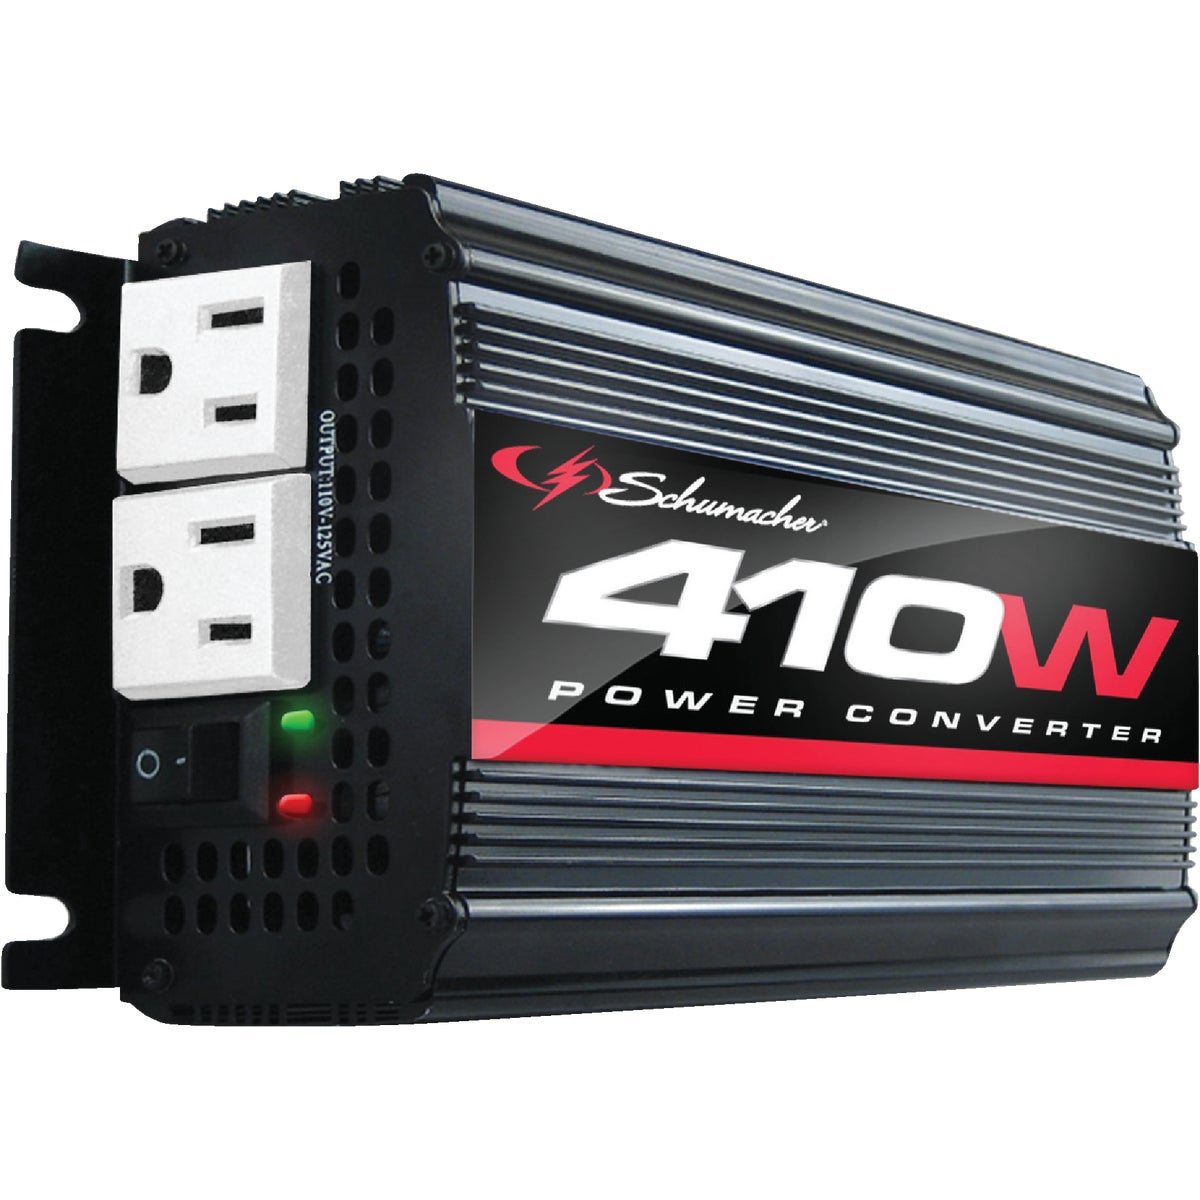 410W POWER INVERTER - XI41B by Schumacher Electric